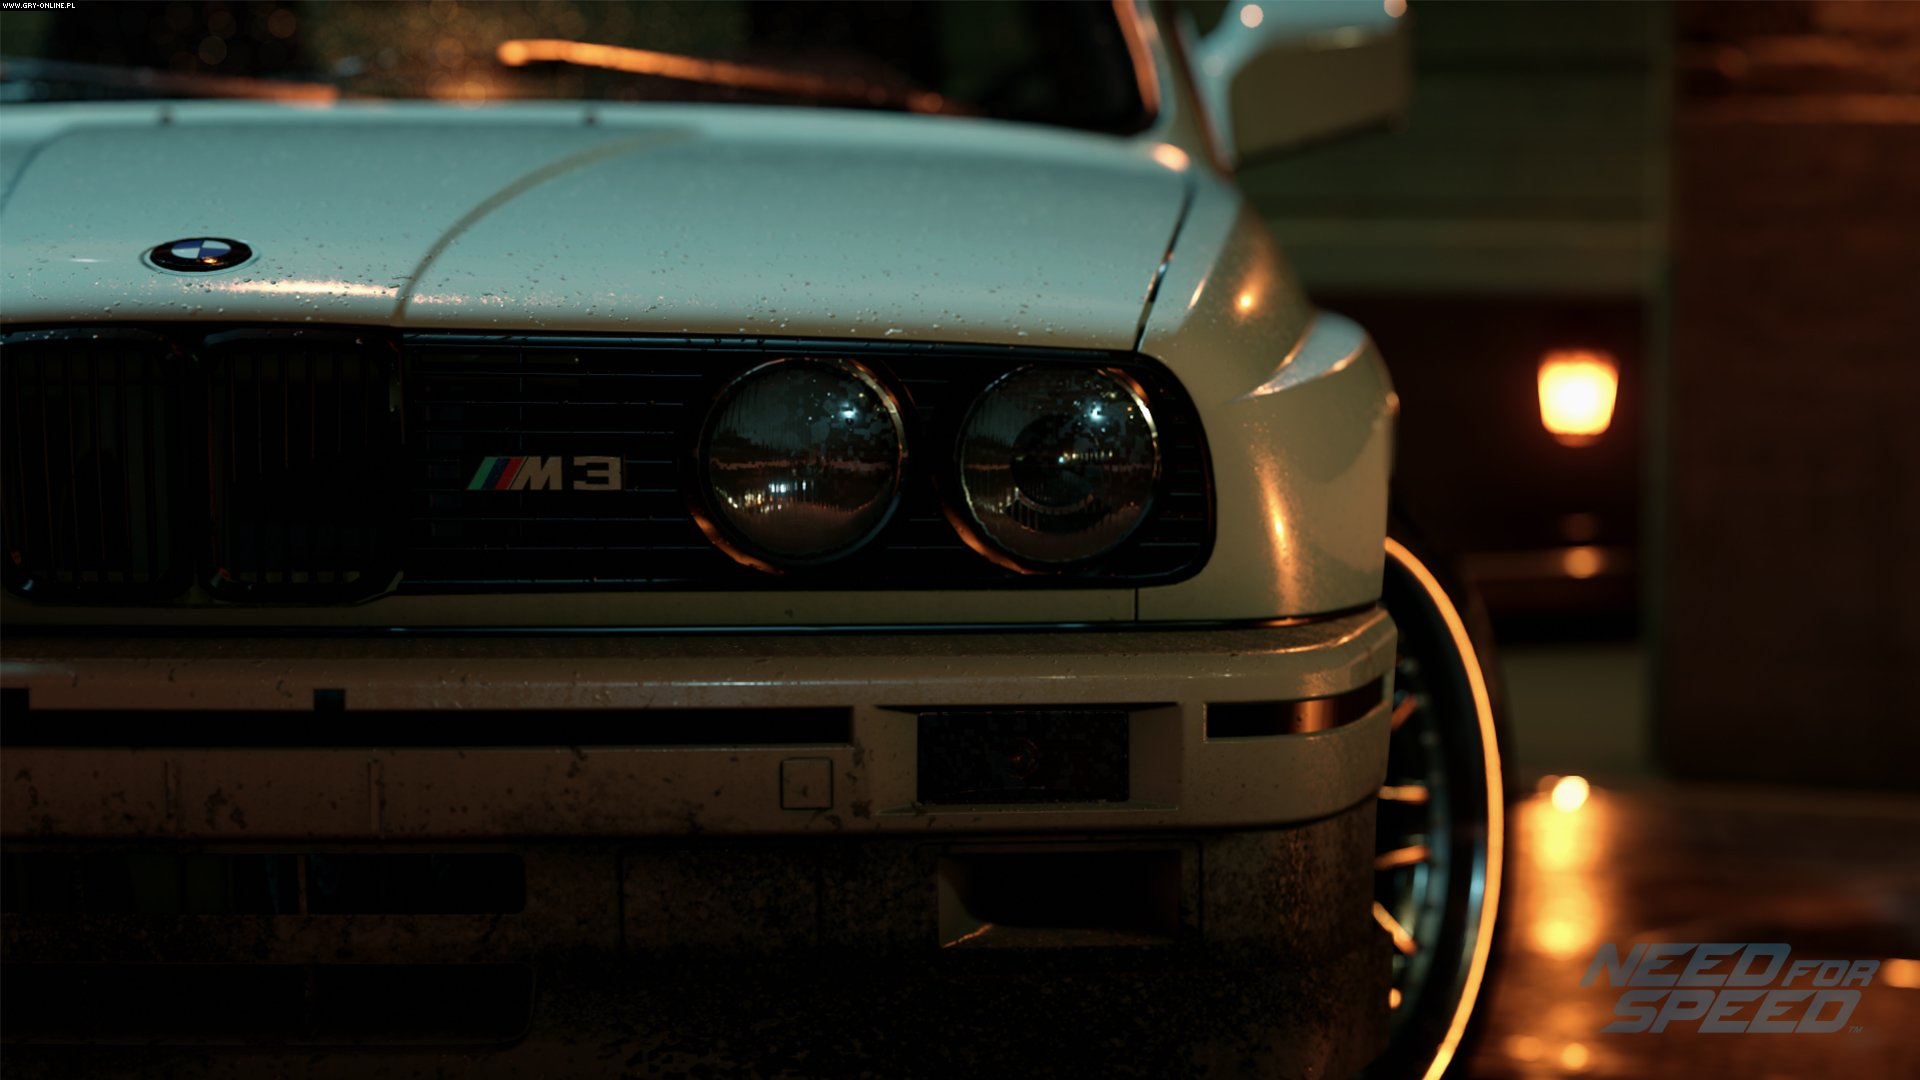 Need for Speed PC, PS4, XONE Gry Screen 54/66, Ghost Games, Electronic Arts Inc.